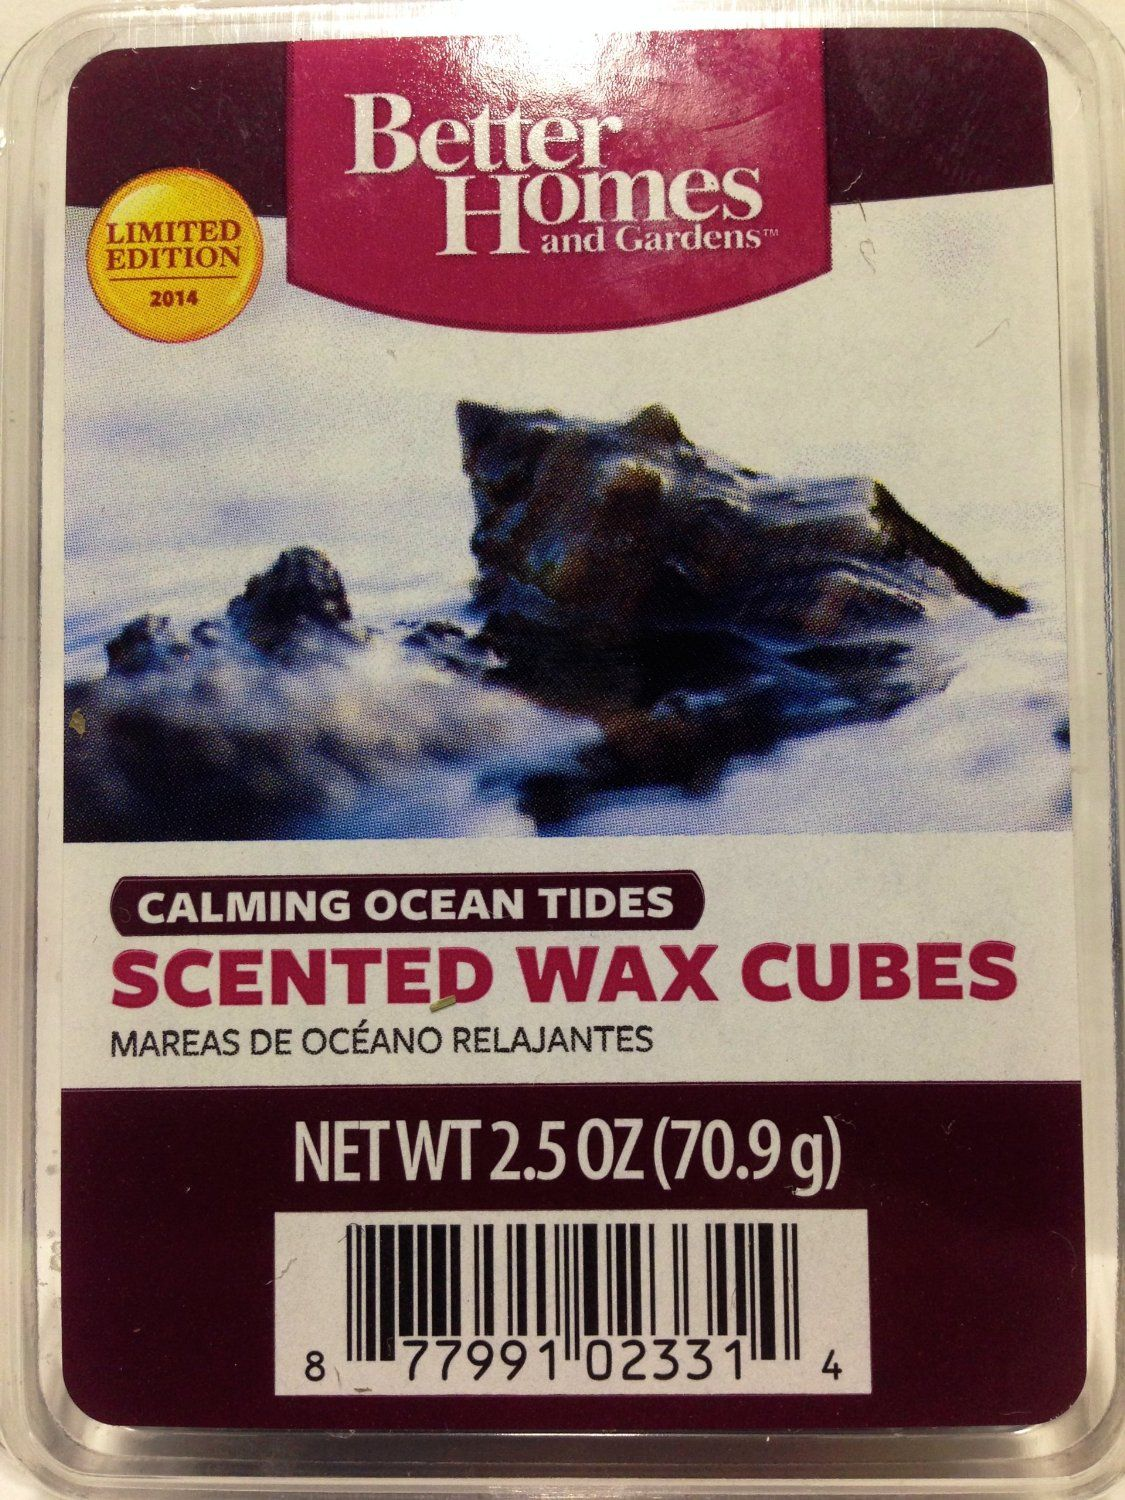 9a2a146d3f16fe656fe92f9df80a5dc7 - Better Homes And Gardens Wax Cubes Scents List